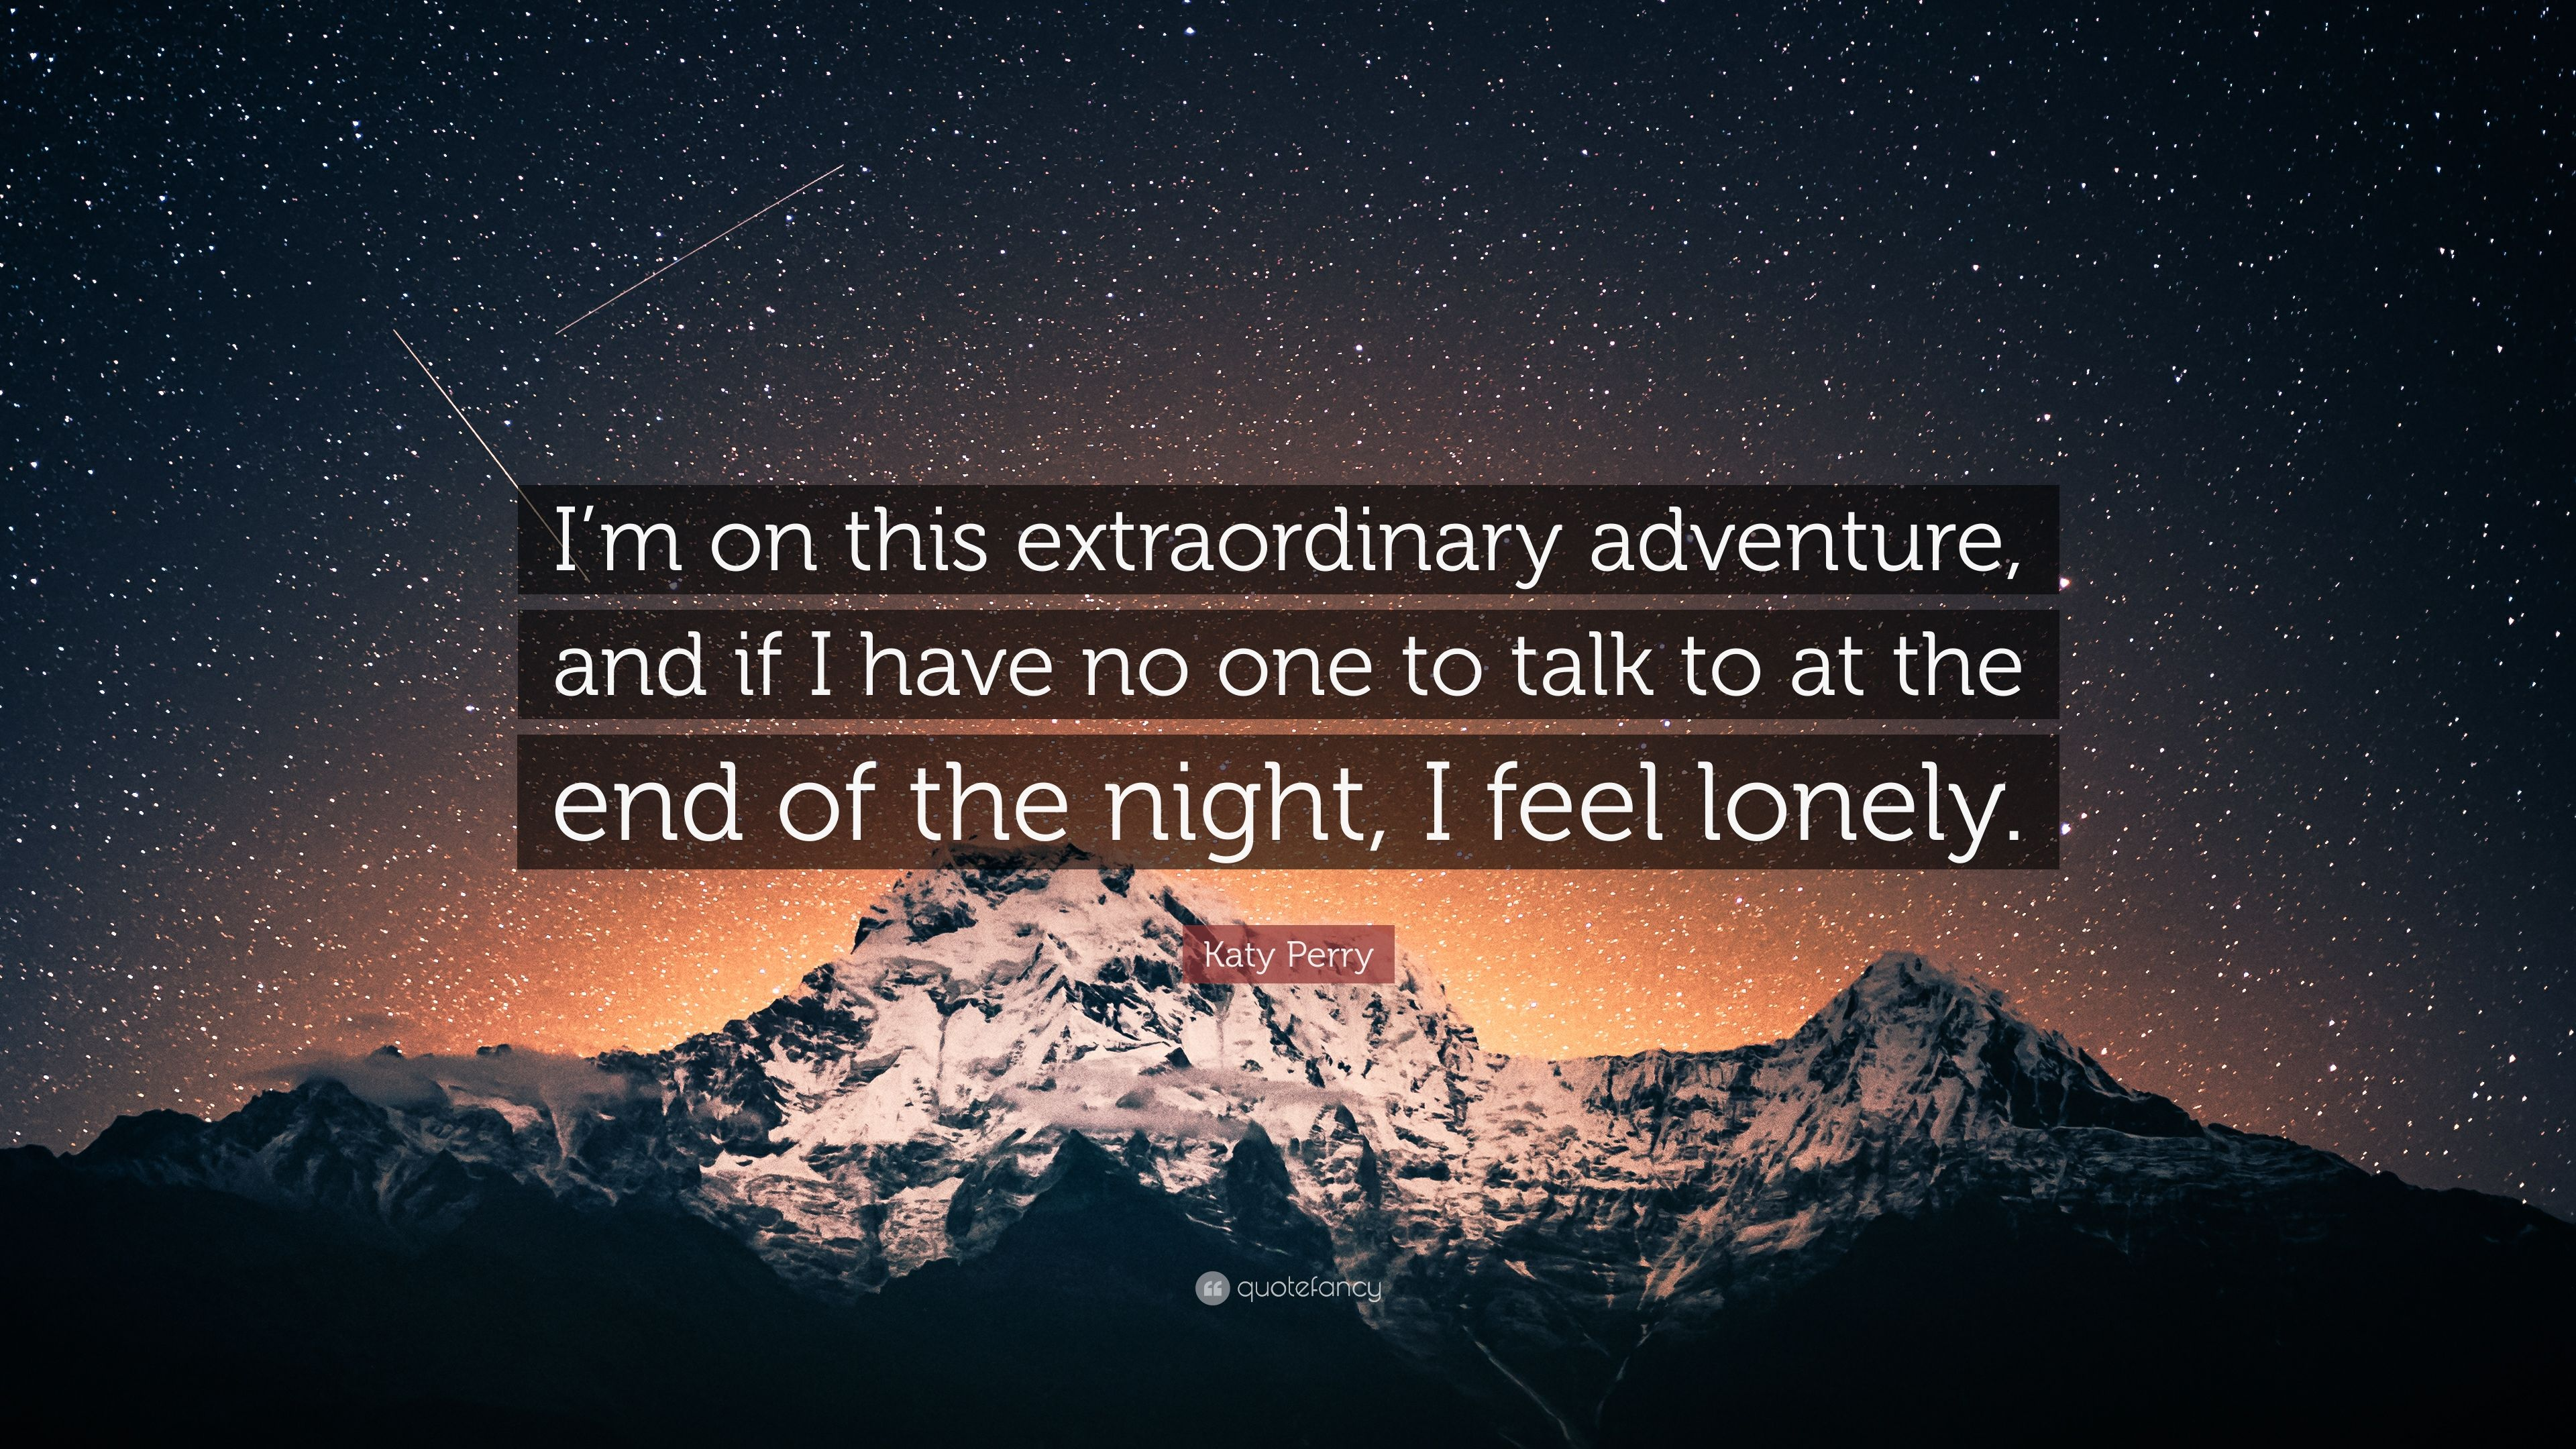 How to stop being lonely at night